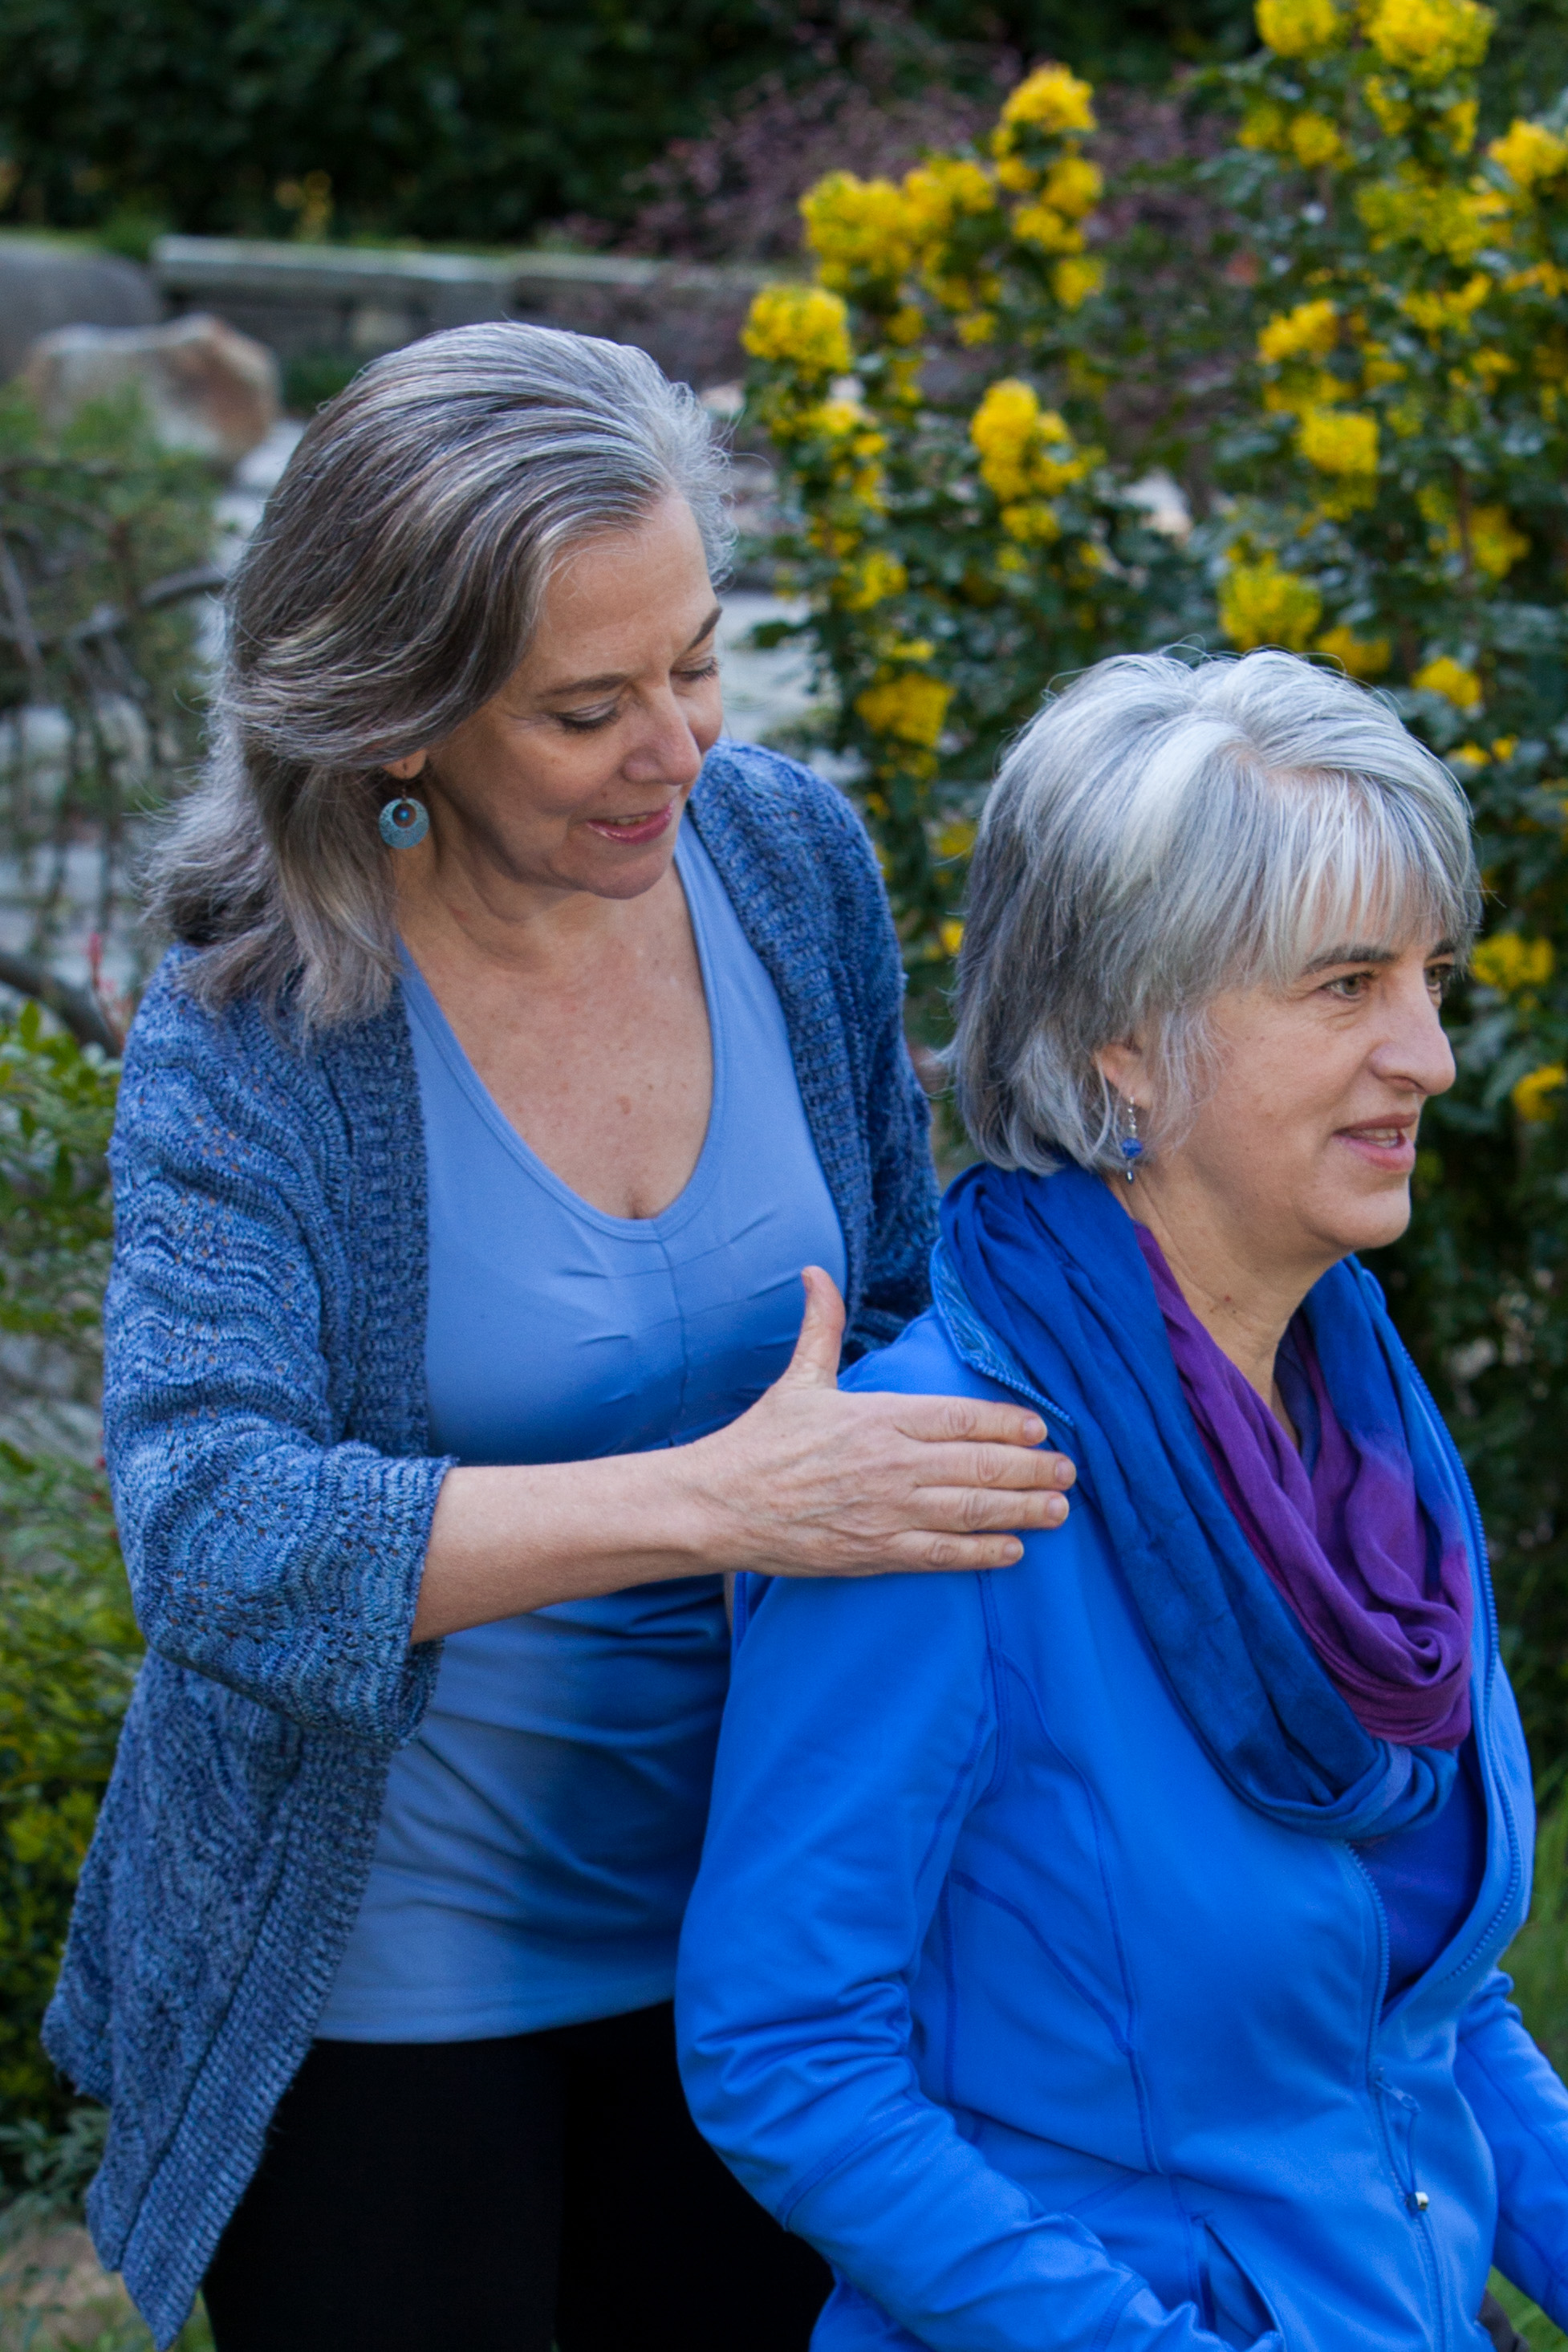 95% of all back problems are organic that can easily be addressed through yoga therapy